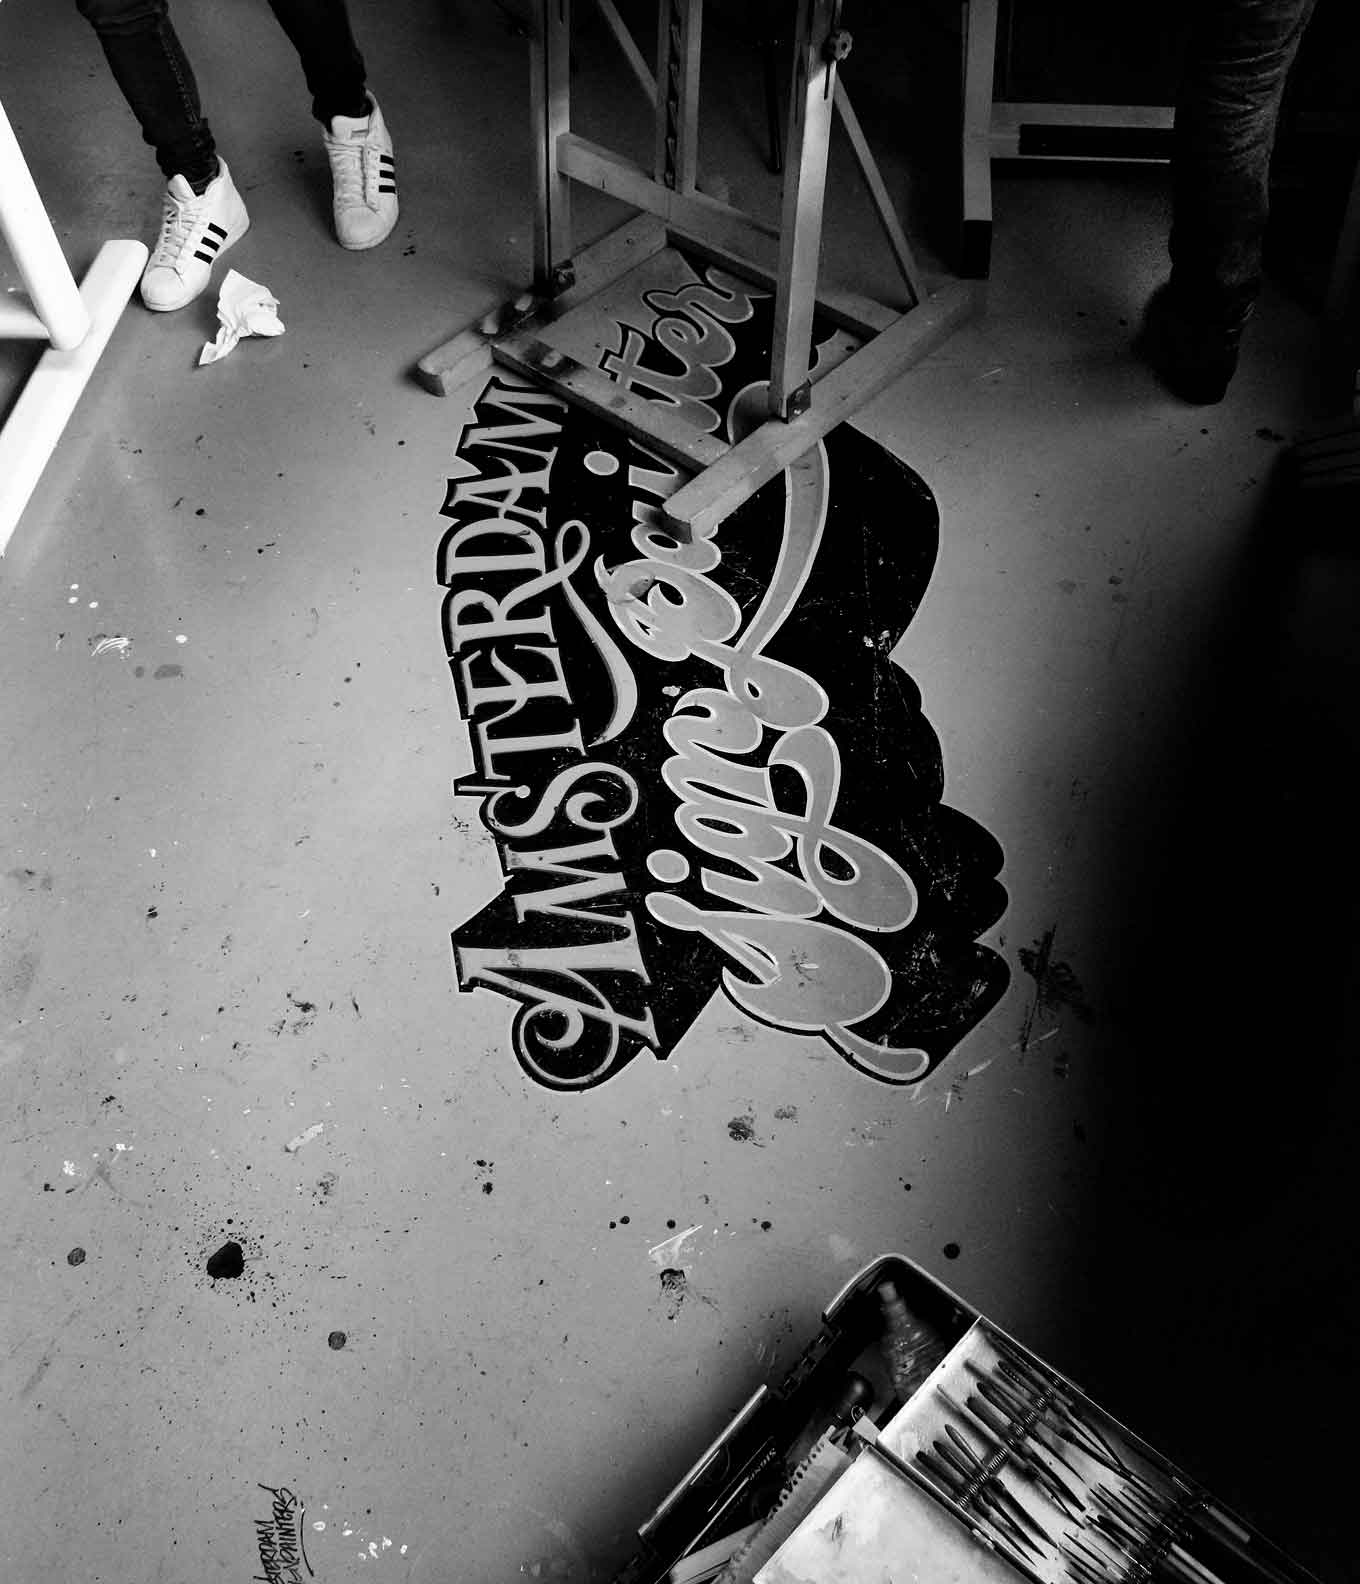 Amsterdam Signpainters logo on studio floor